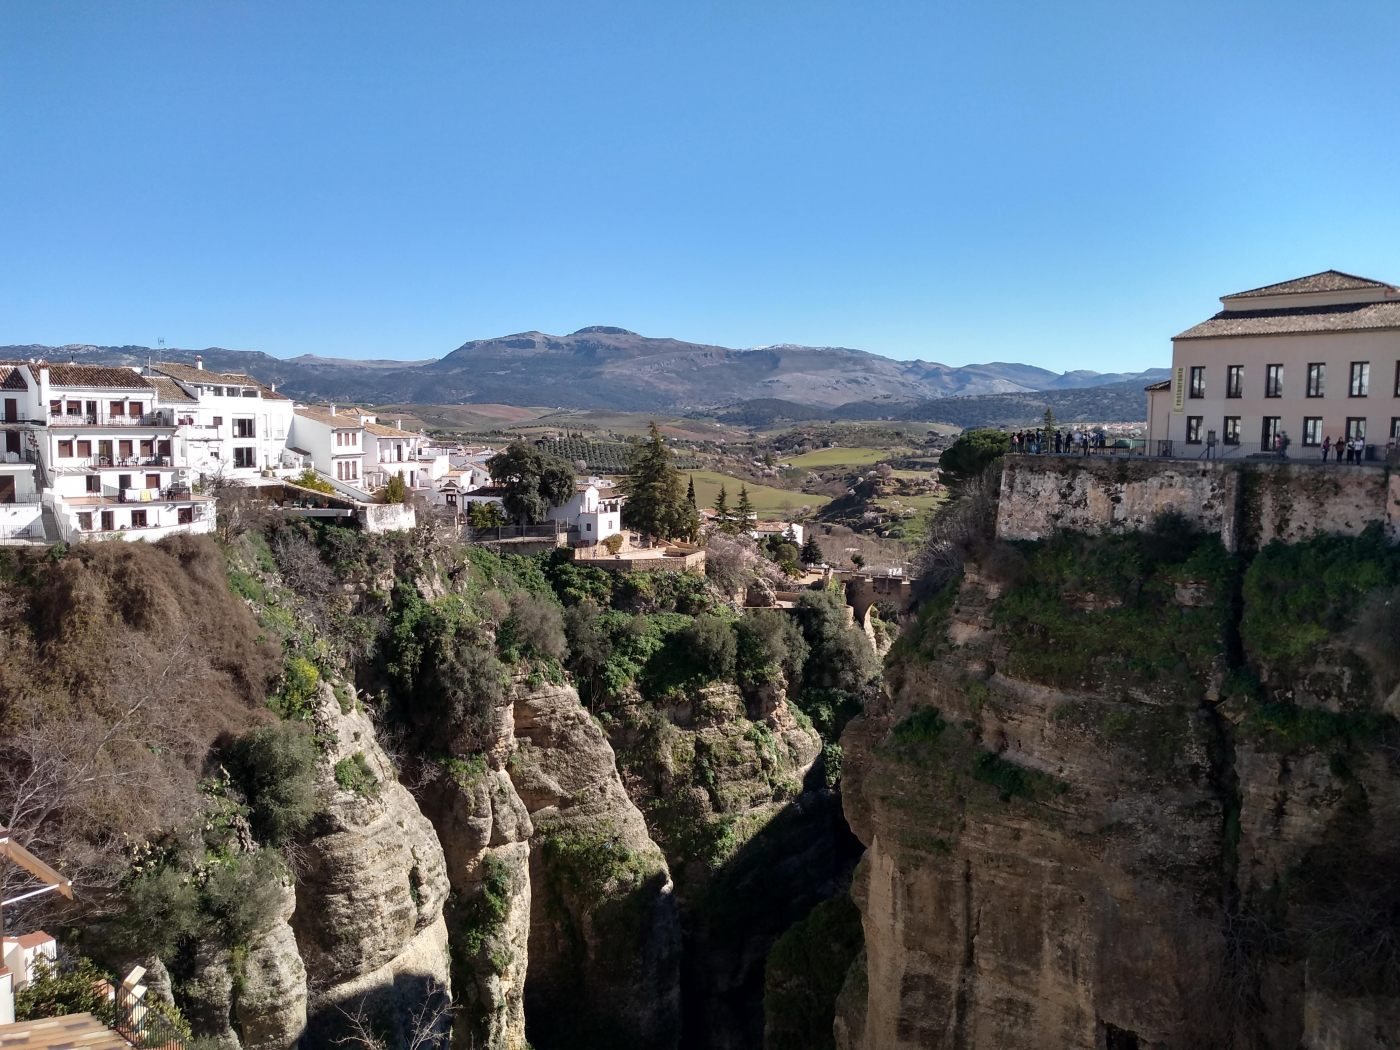 View from the Puente Nuevo, Ronda